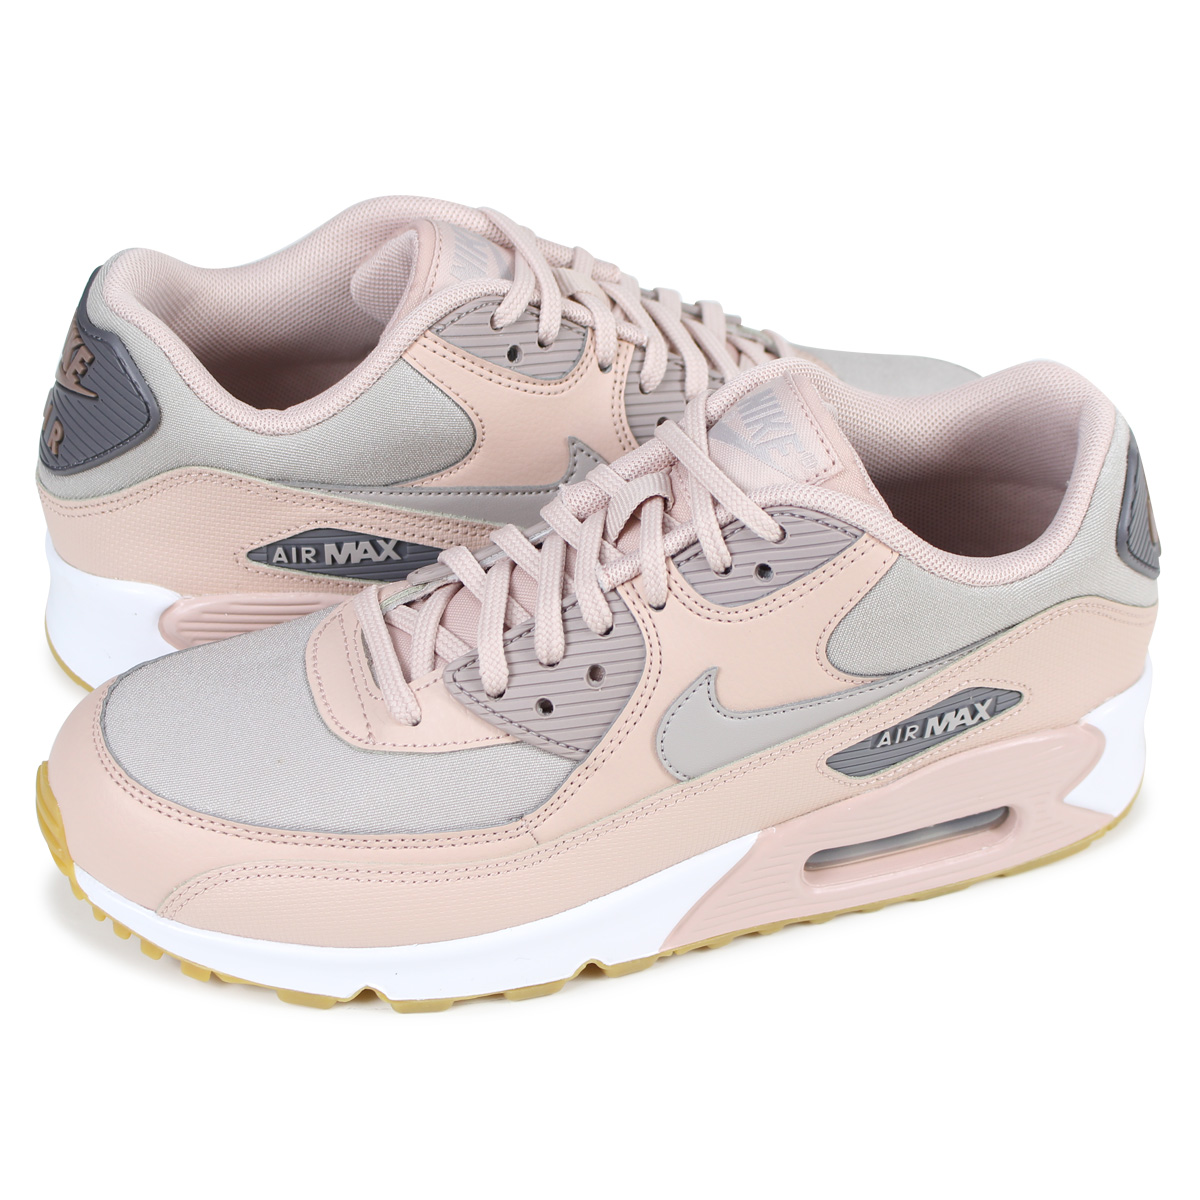 competitive price 2d8a0 4bdb2 NIKE WMNS AIR MAX 90 Kie Ney AMAX 90 lady's men's sneakers 325,213-206  beige [the load planned additional arrival in reservation product 3/2 ...